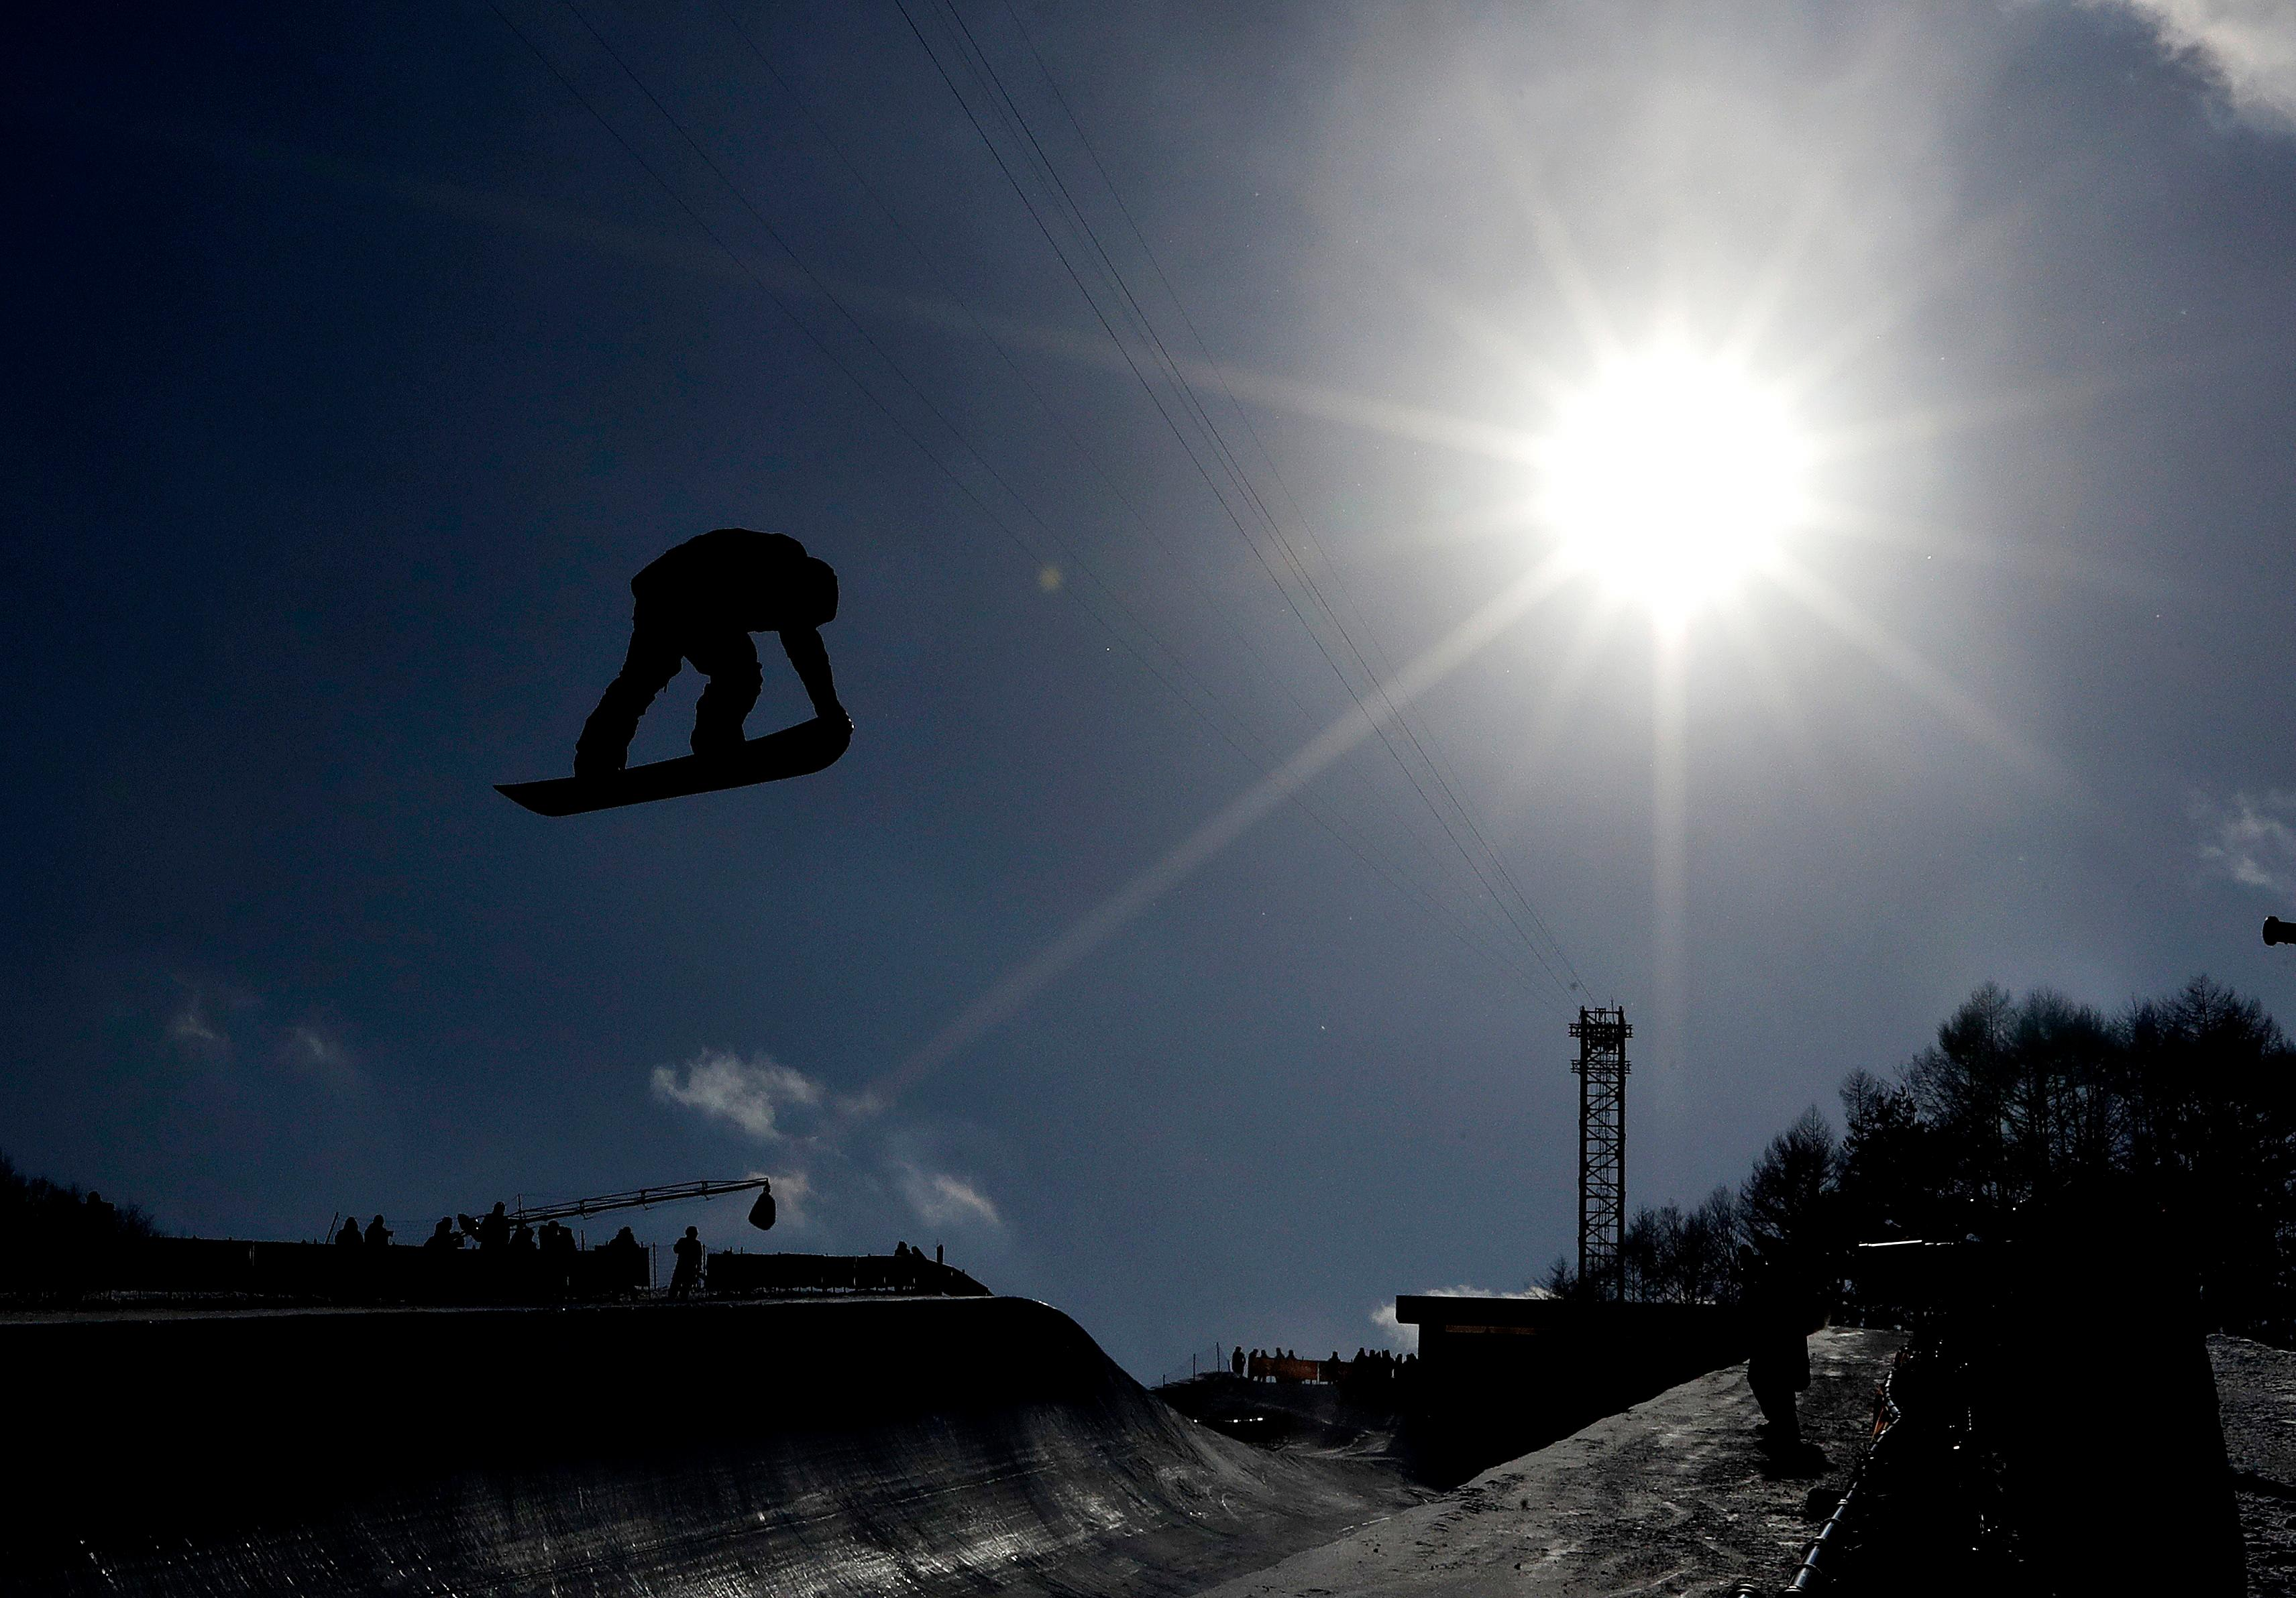 Peetu Piiroinen, of Finland, jumps during the men's halfpipe qualifying at Phoenix Snow Park at the 2018 Winter Olympics in Pyeongchang, South Korea, Tuesday, Feb. 13, 2018. (AP Photo/Lee Jin-man)